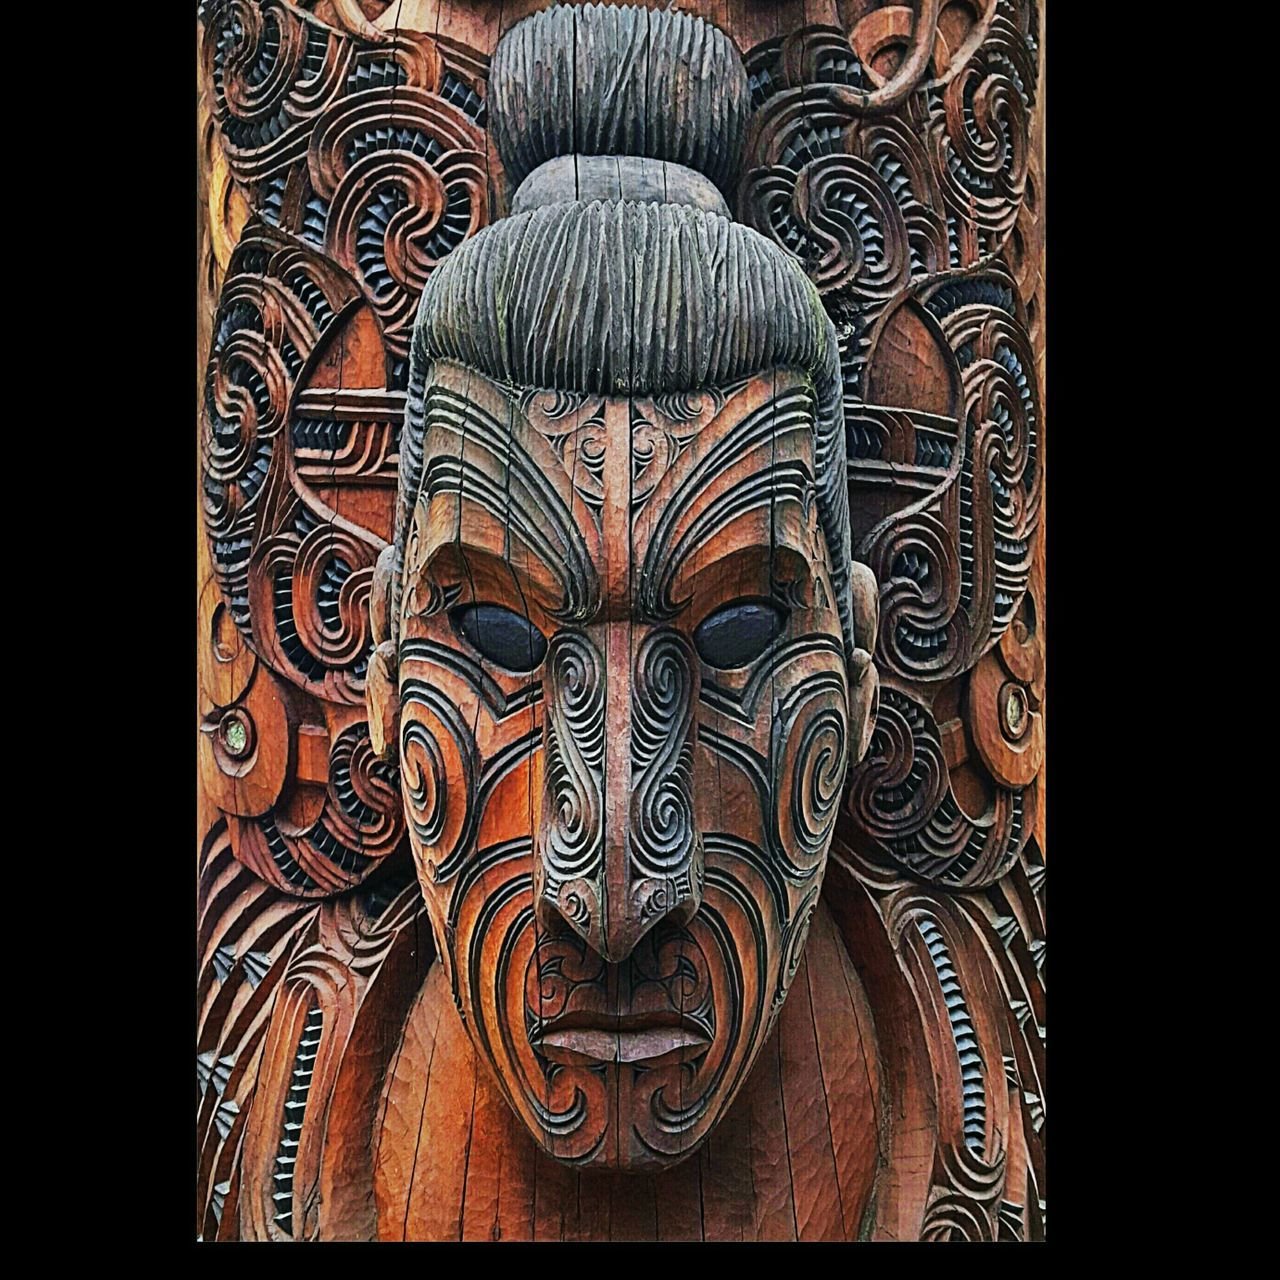 This is one of the 12 carvings at Te Pui Rotorua  Newzealand representing a Moari celestial guardian Travel Visiting Carving Art Tatoo Face Amazing